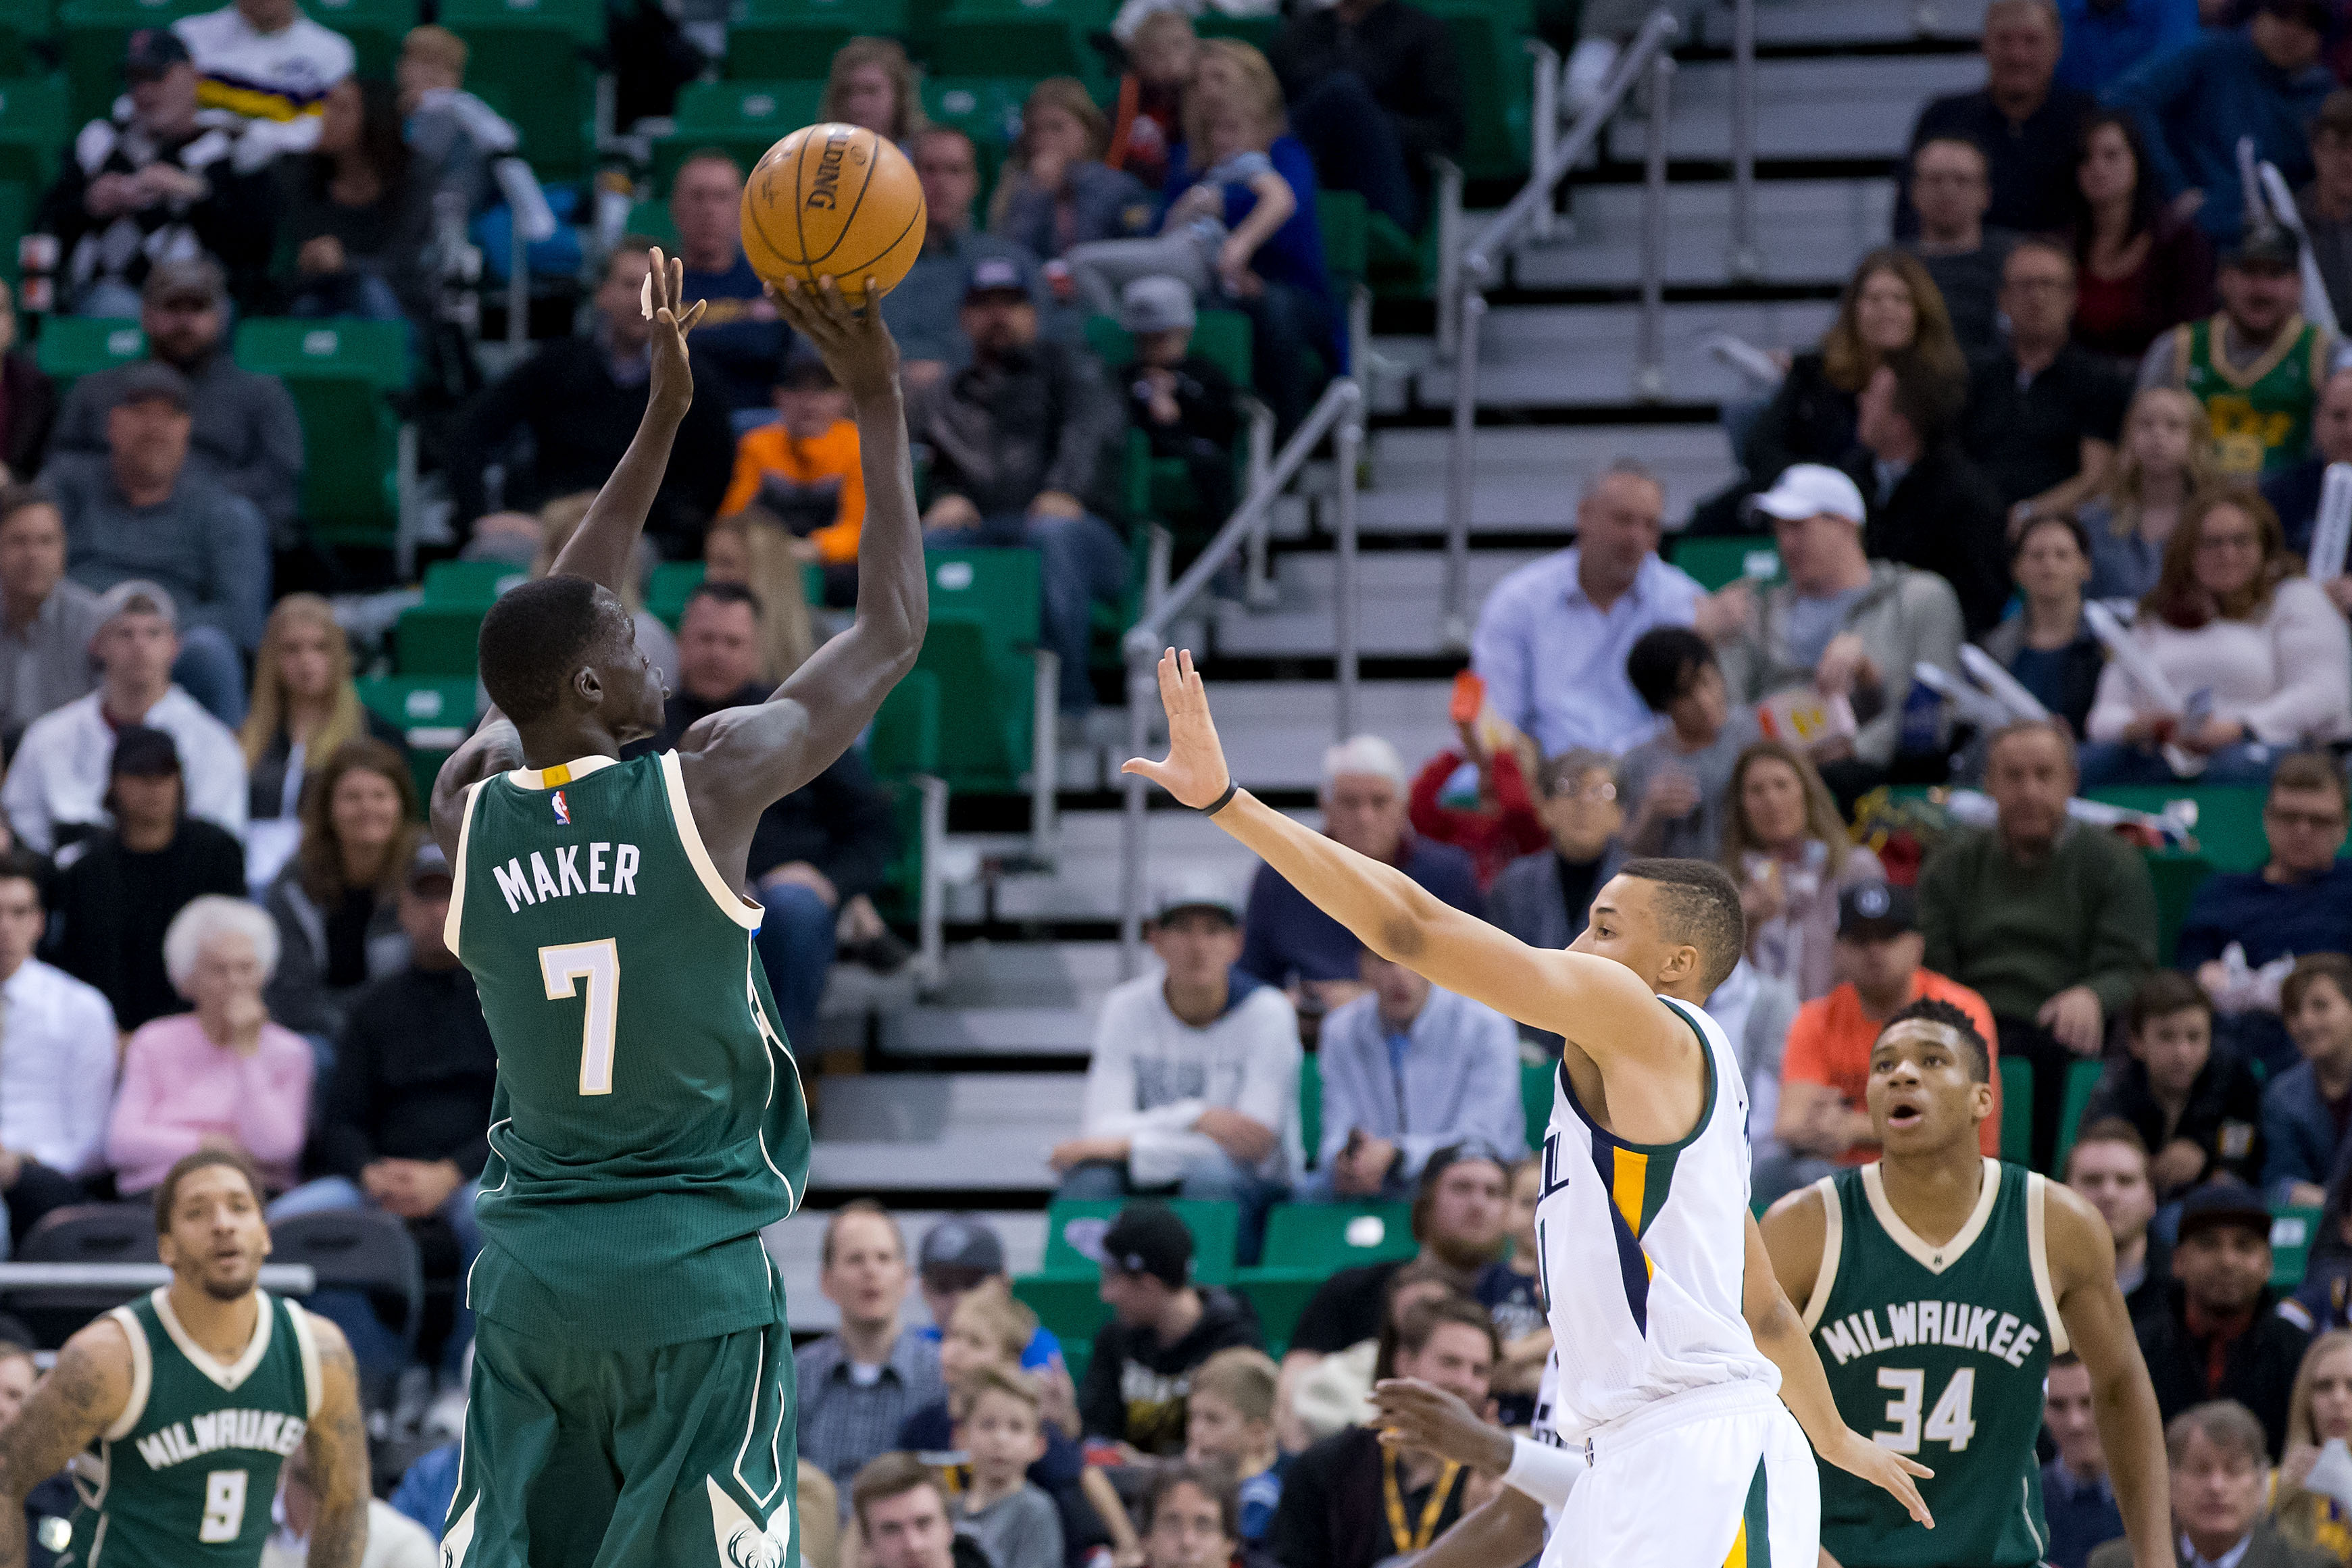 Feb 1, 2017; Salt Lake City, UT, USA; Milwaukee Bucks forward Thon Maker (7) shoots the ball against Utah Jazz guard Dante Exum (11) during the second half at Vivint Smart Home Arena. The Jazz won 104-88. Mandatory Credit: Russ Isabella-USA TODAY Sports